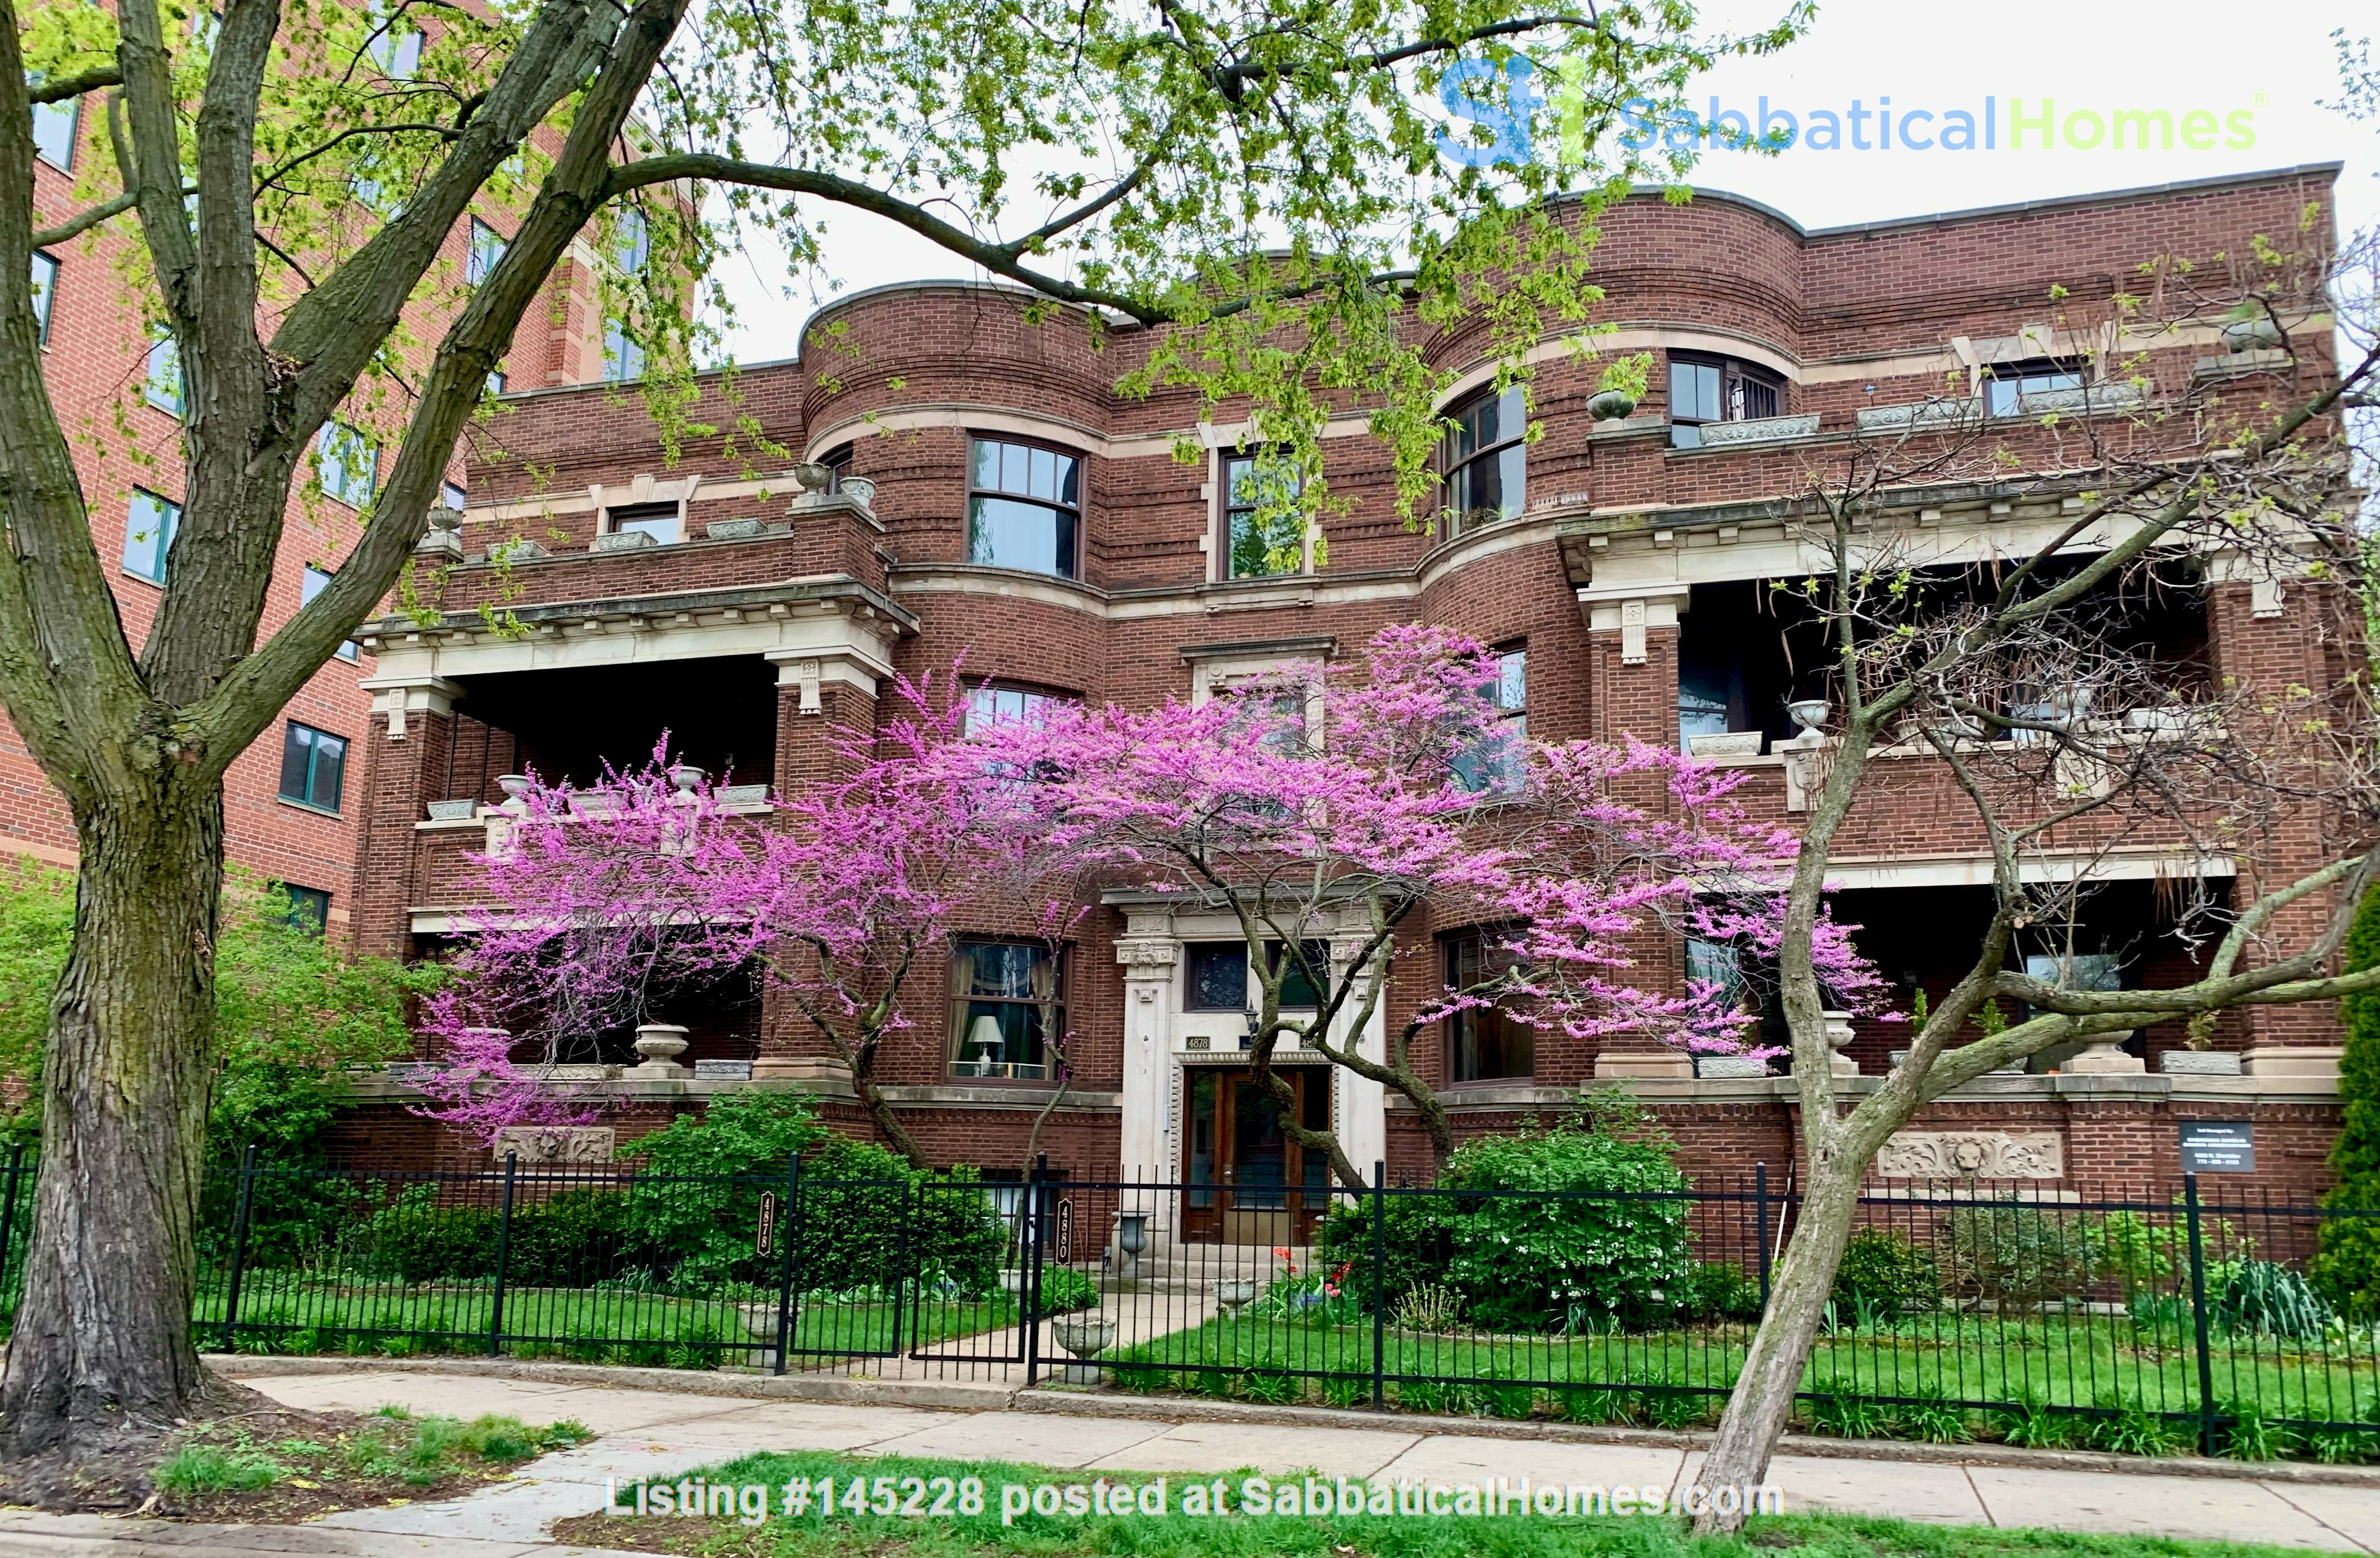 Family-ready 3bed/2bath with front porch & back garden a walk from the lake Home Rental in Chicago, Illinois, United States 0